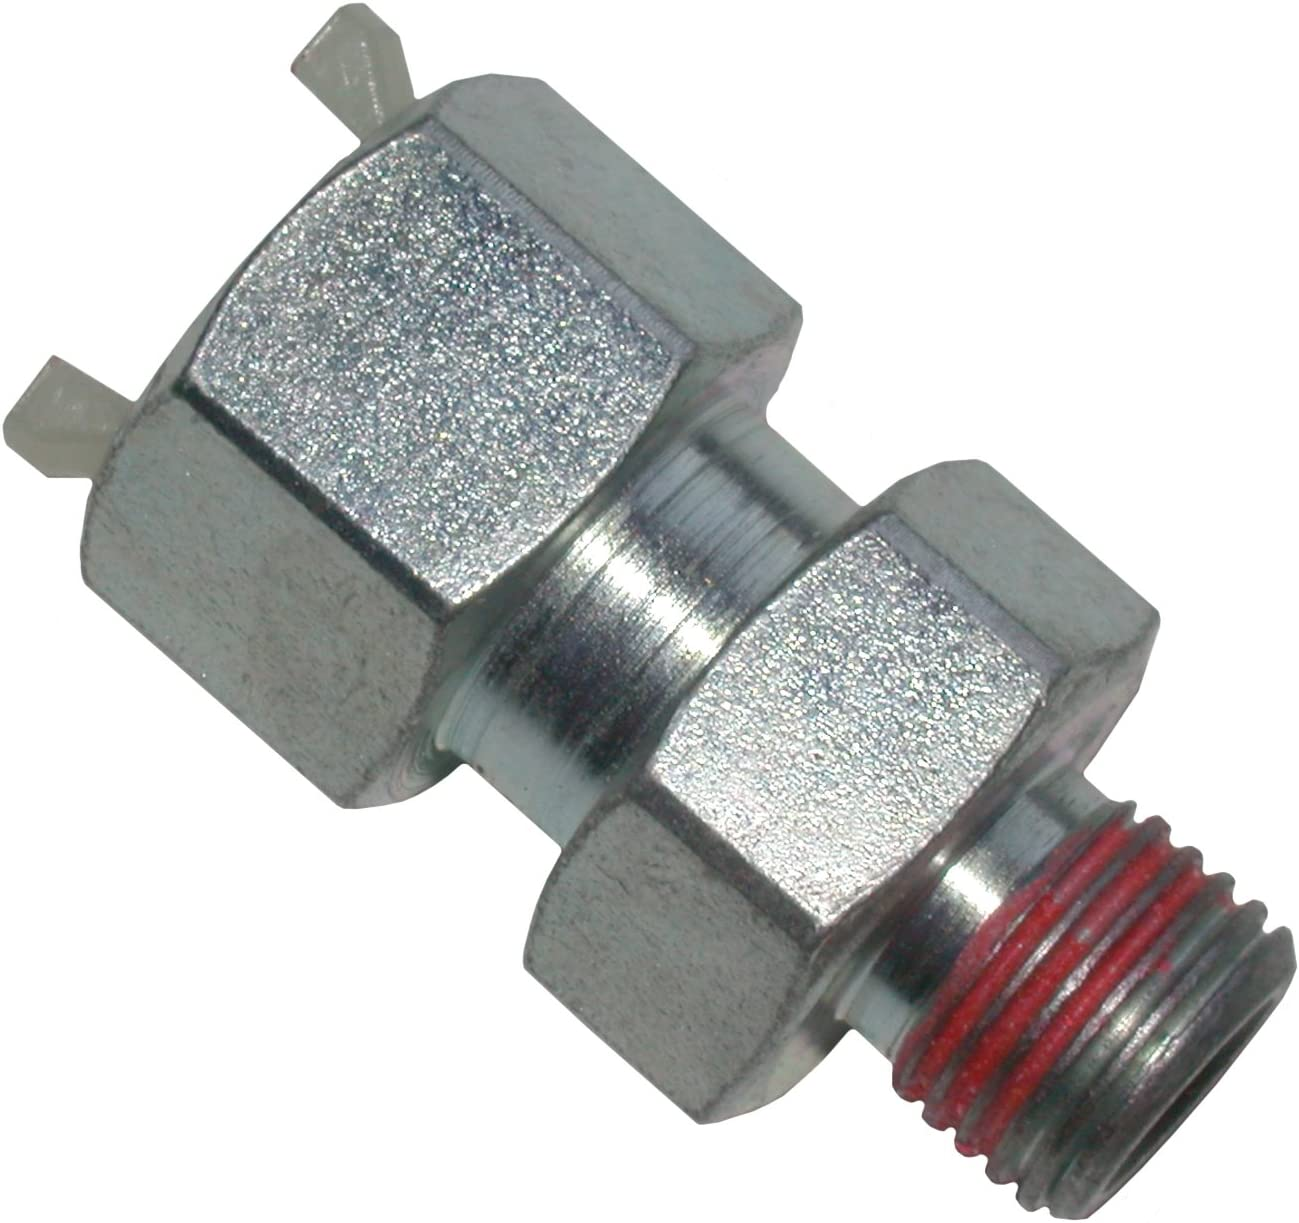 Needa Parts 800-602 Transmission Cooling Line Popular product Connector for Ford OFFer